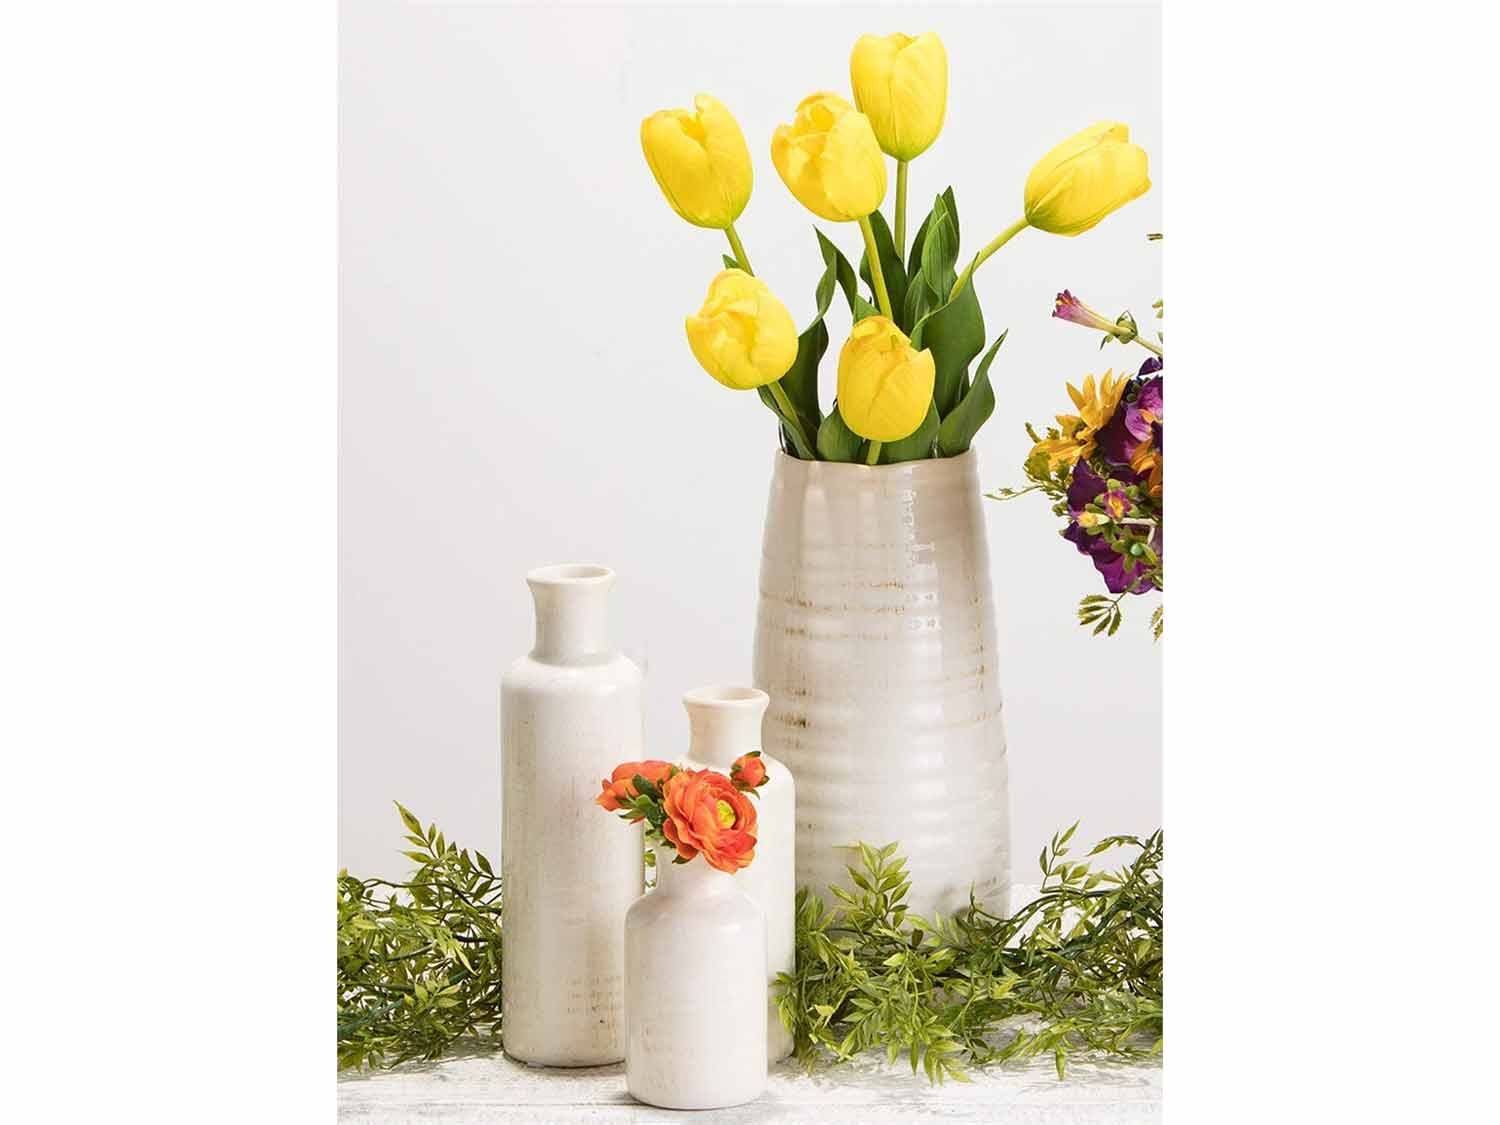 Sullivans Small White Vase Set